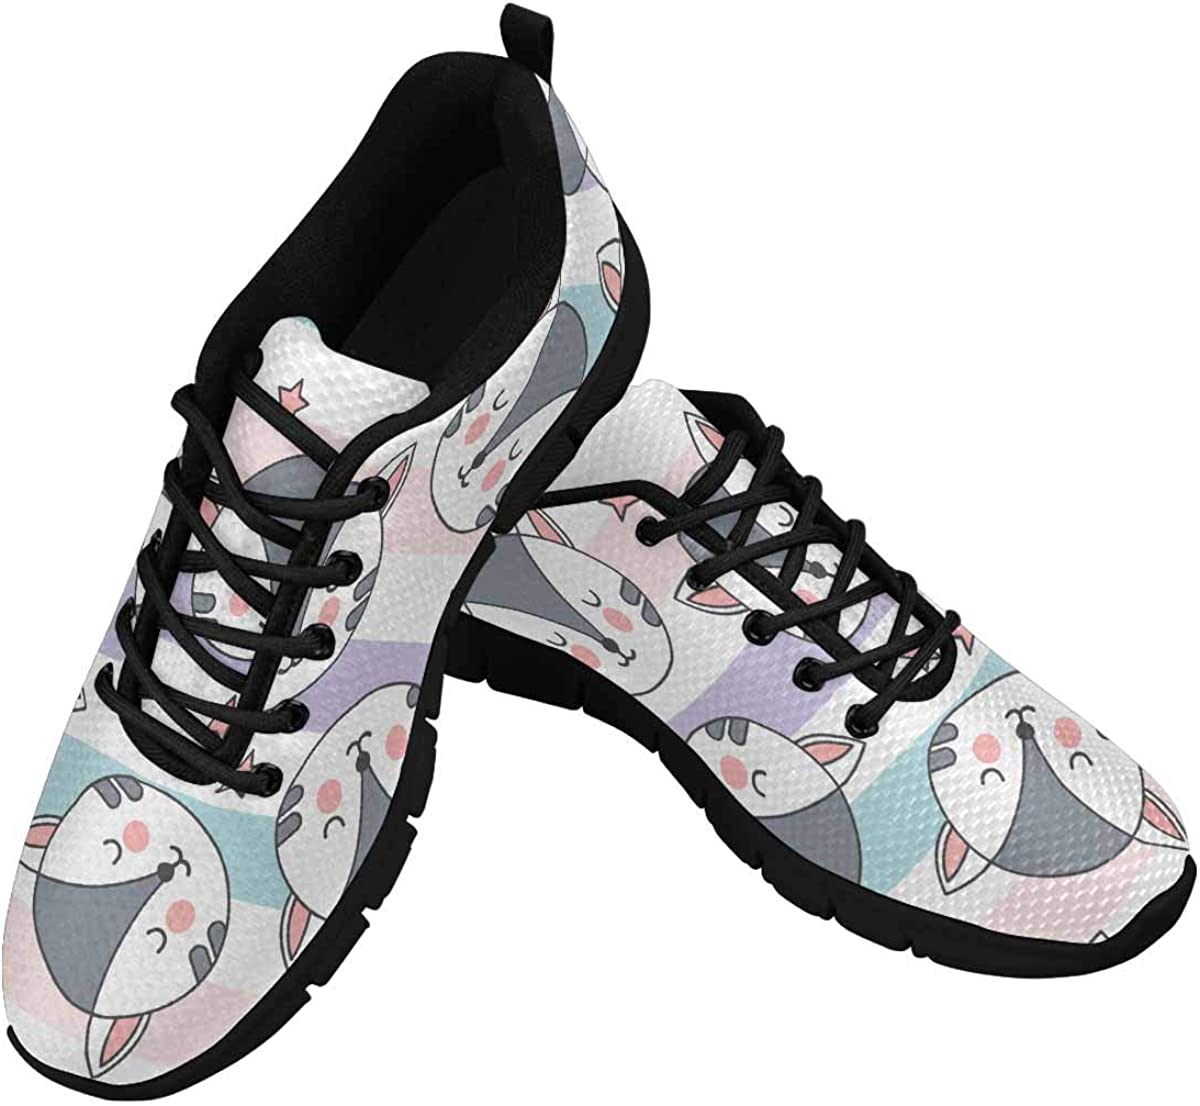 INTERESTPRINT Kittens and Stars Women's Athletic Mesh Breathable Casual Sneakers Fashion Tennis Shoes